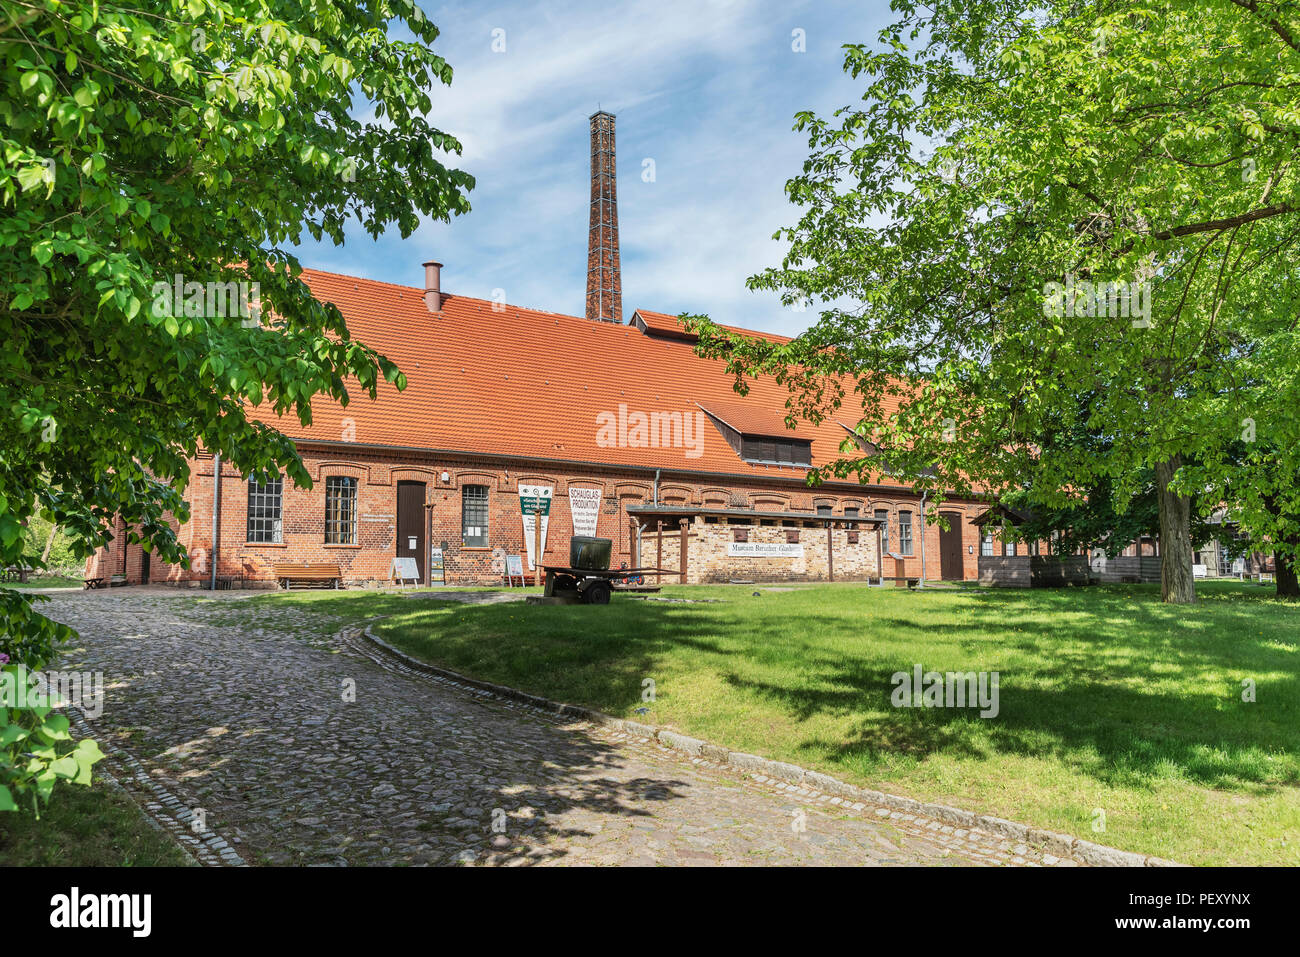 New Glashuette building in the museum village Baruther Glashuette, Baruth / Mark, district Teltow-Flaeming, Brandenburg, Germany, Europe - Stock Image